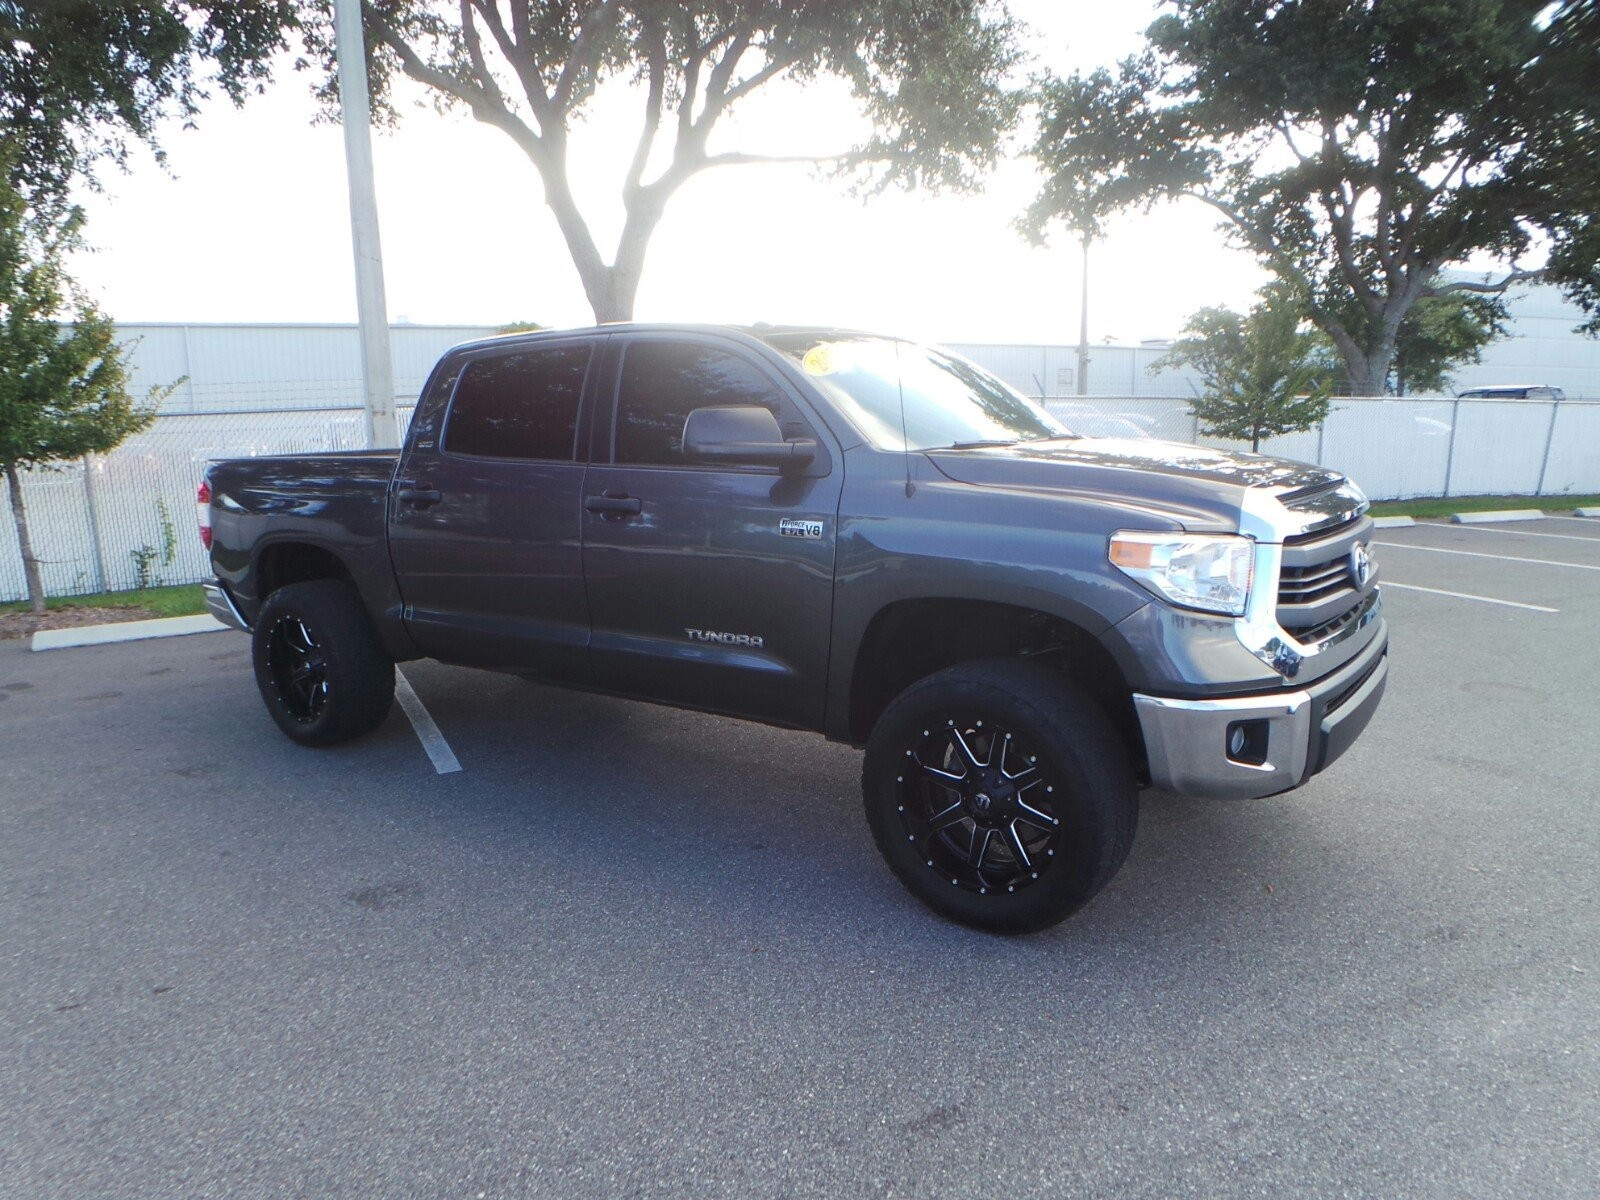 2000 toyota Tundra Parts Diagram Pre Owned 2015 toyota Tundra 4wd Truck Sr5 Crewmax In Jacksonville Of 2000 toyota Tundra Parts Diagram